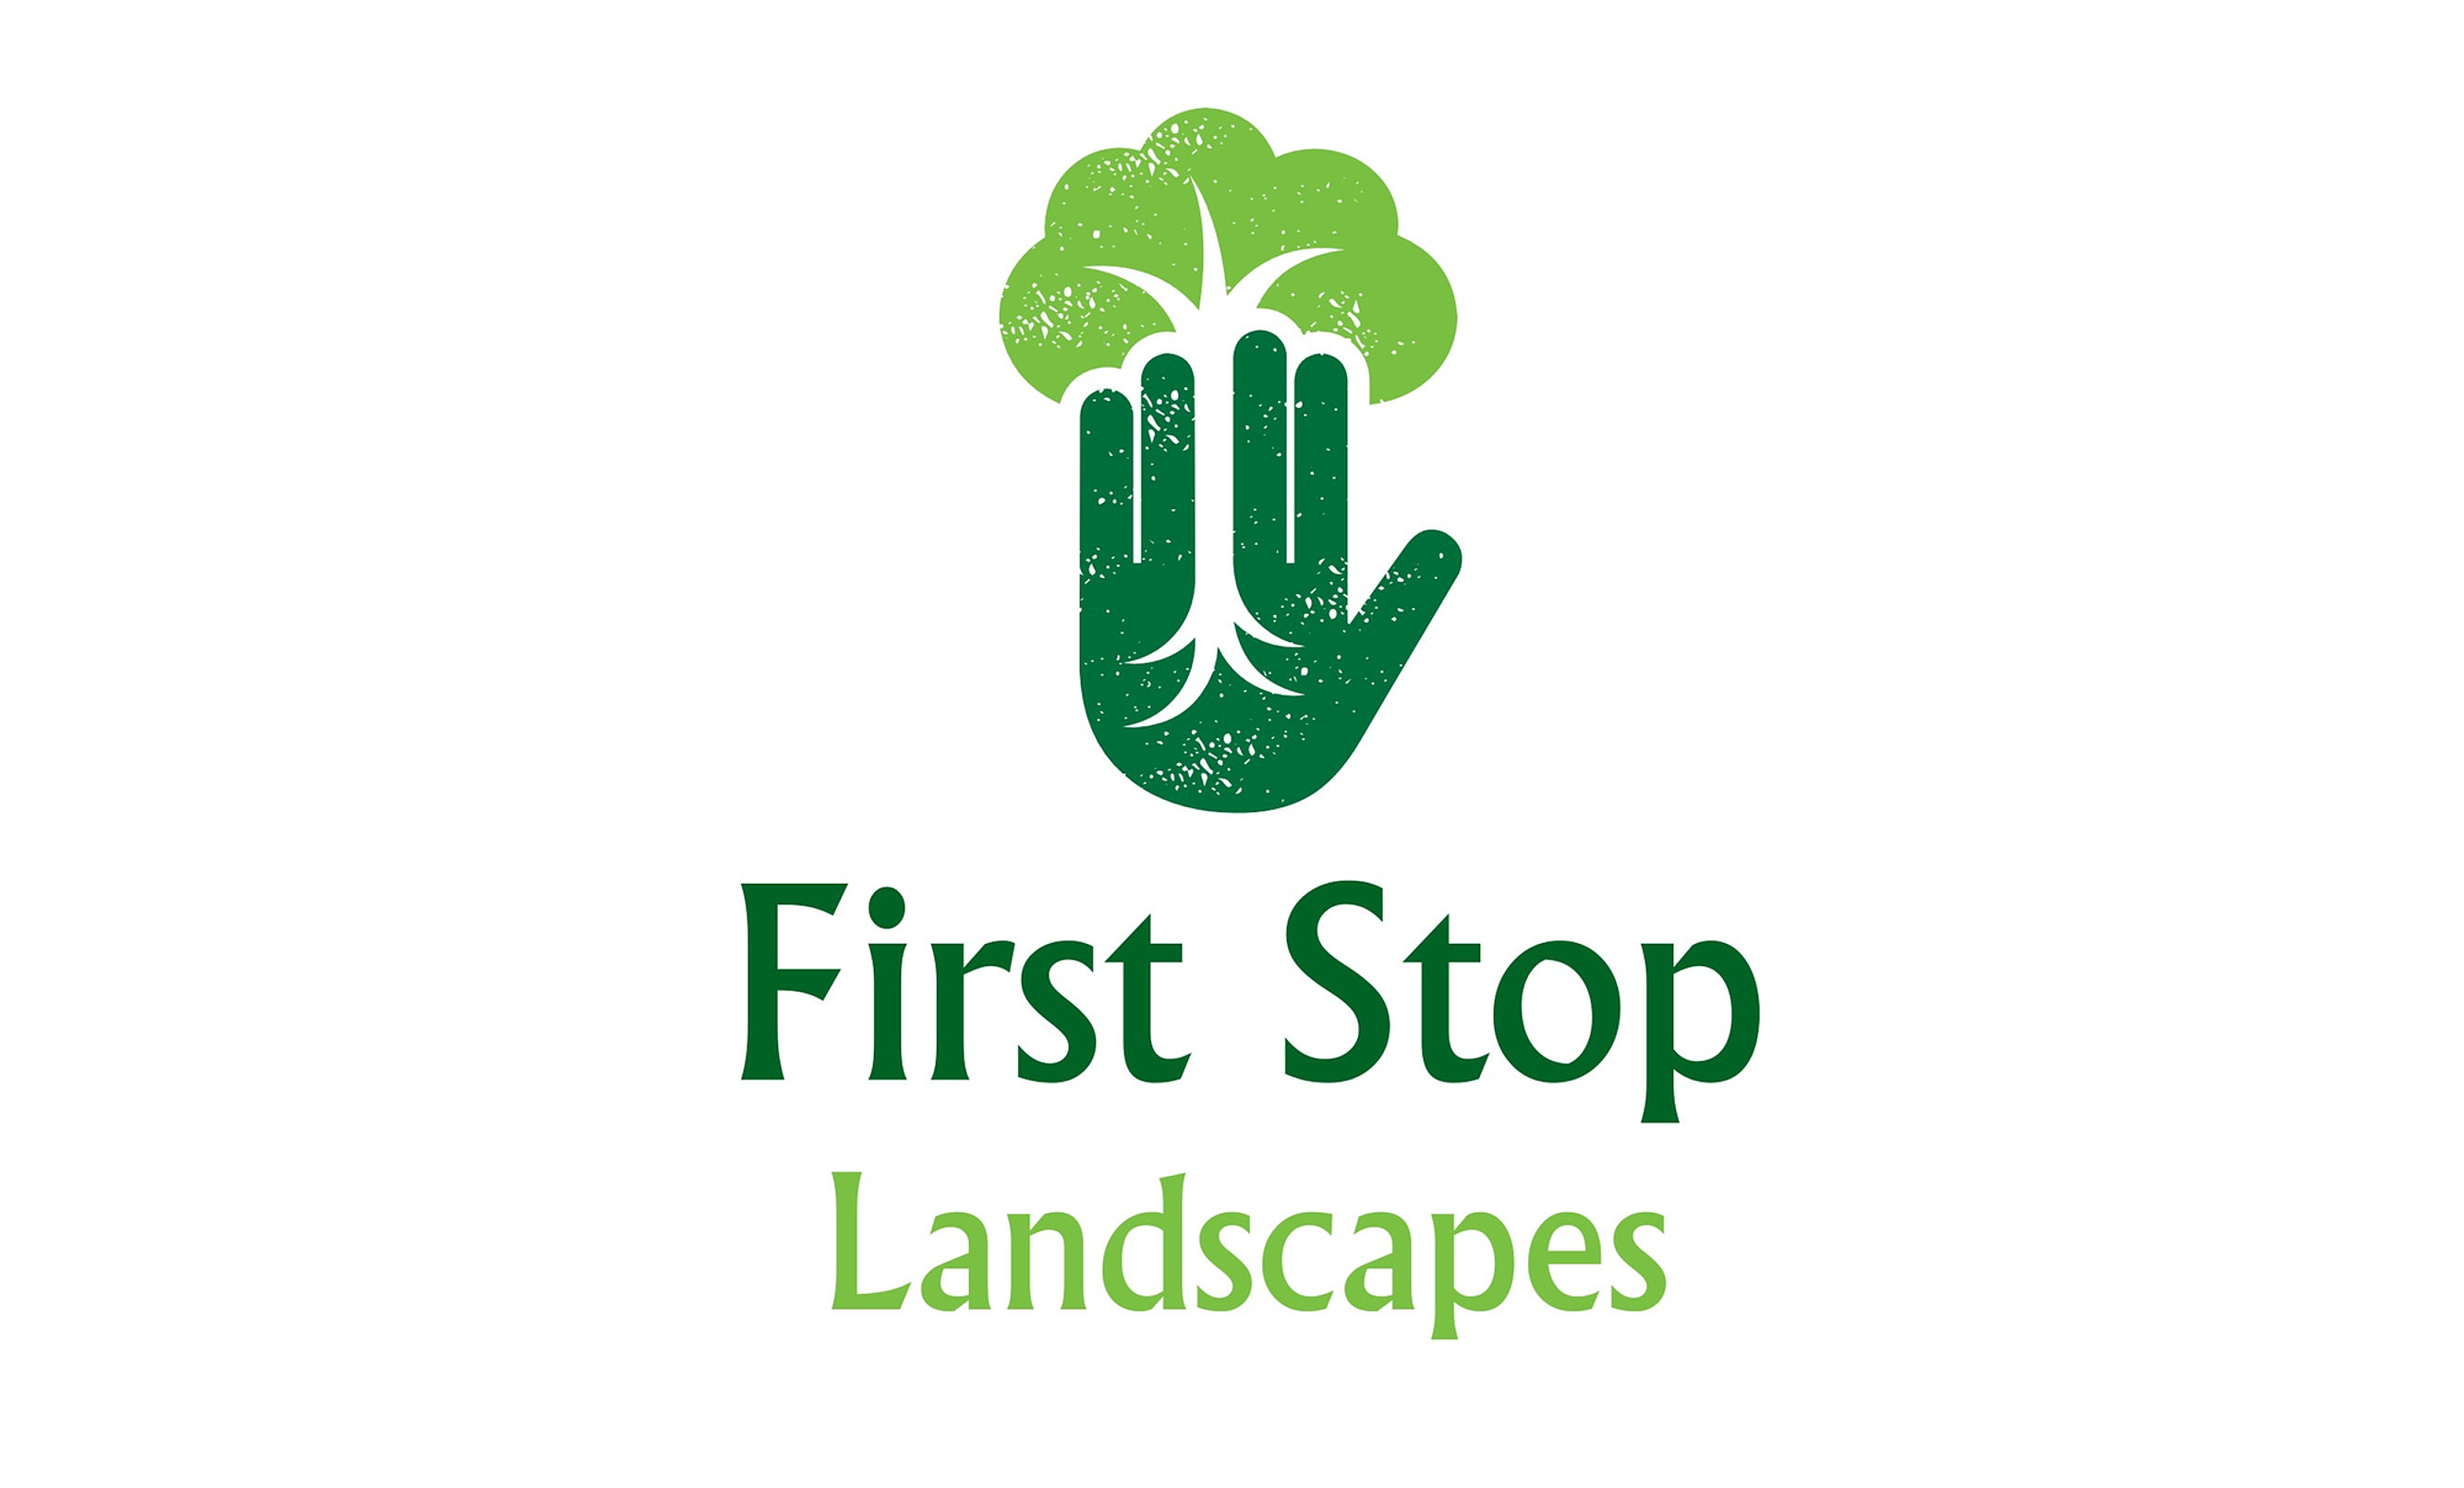 First stop landscapes, landscaping, fencing Cardiff